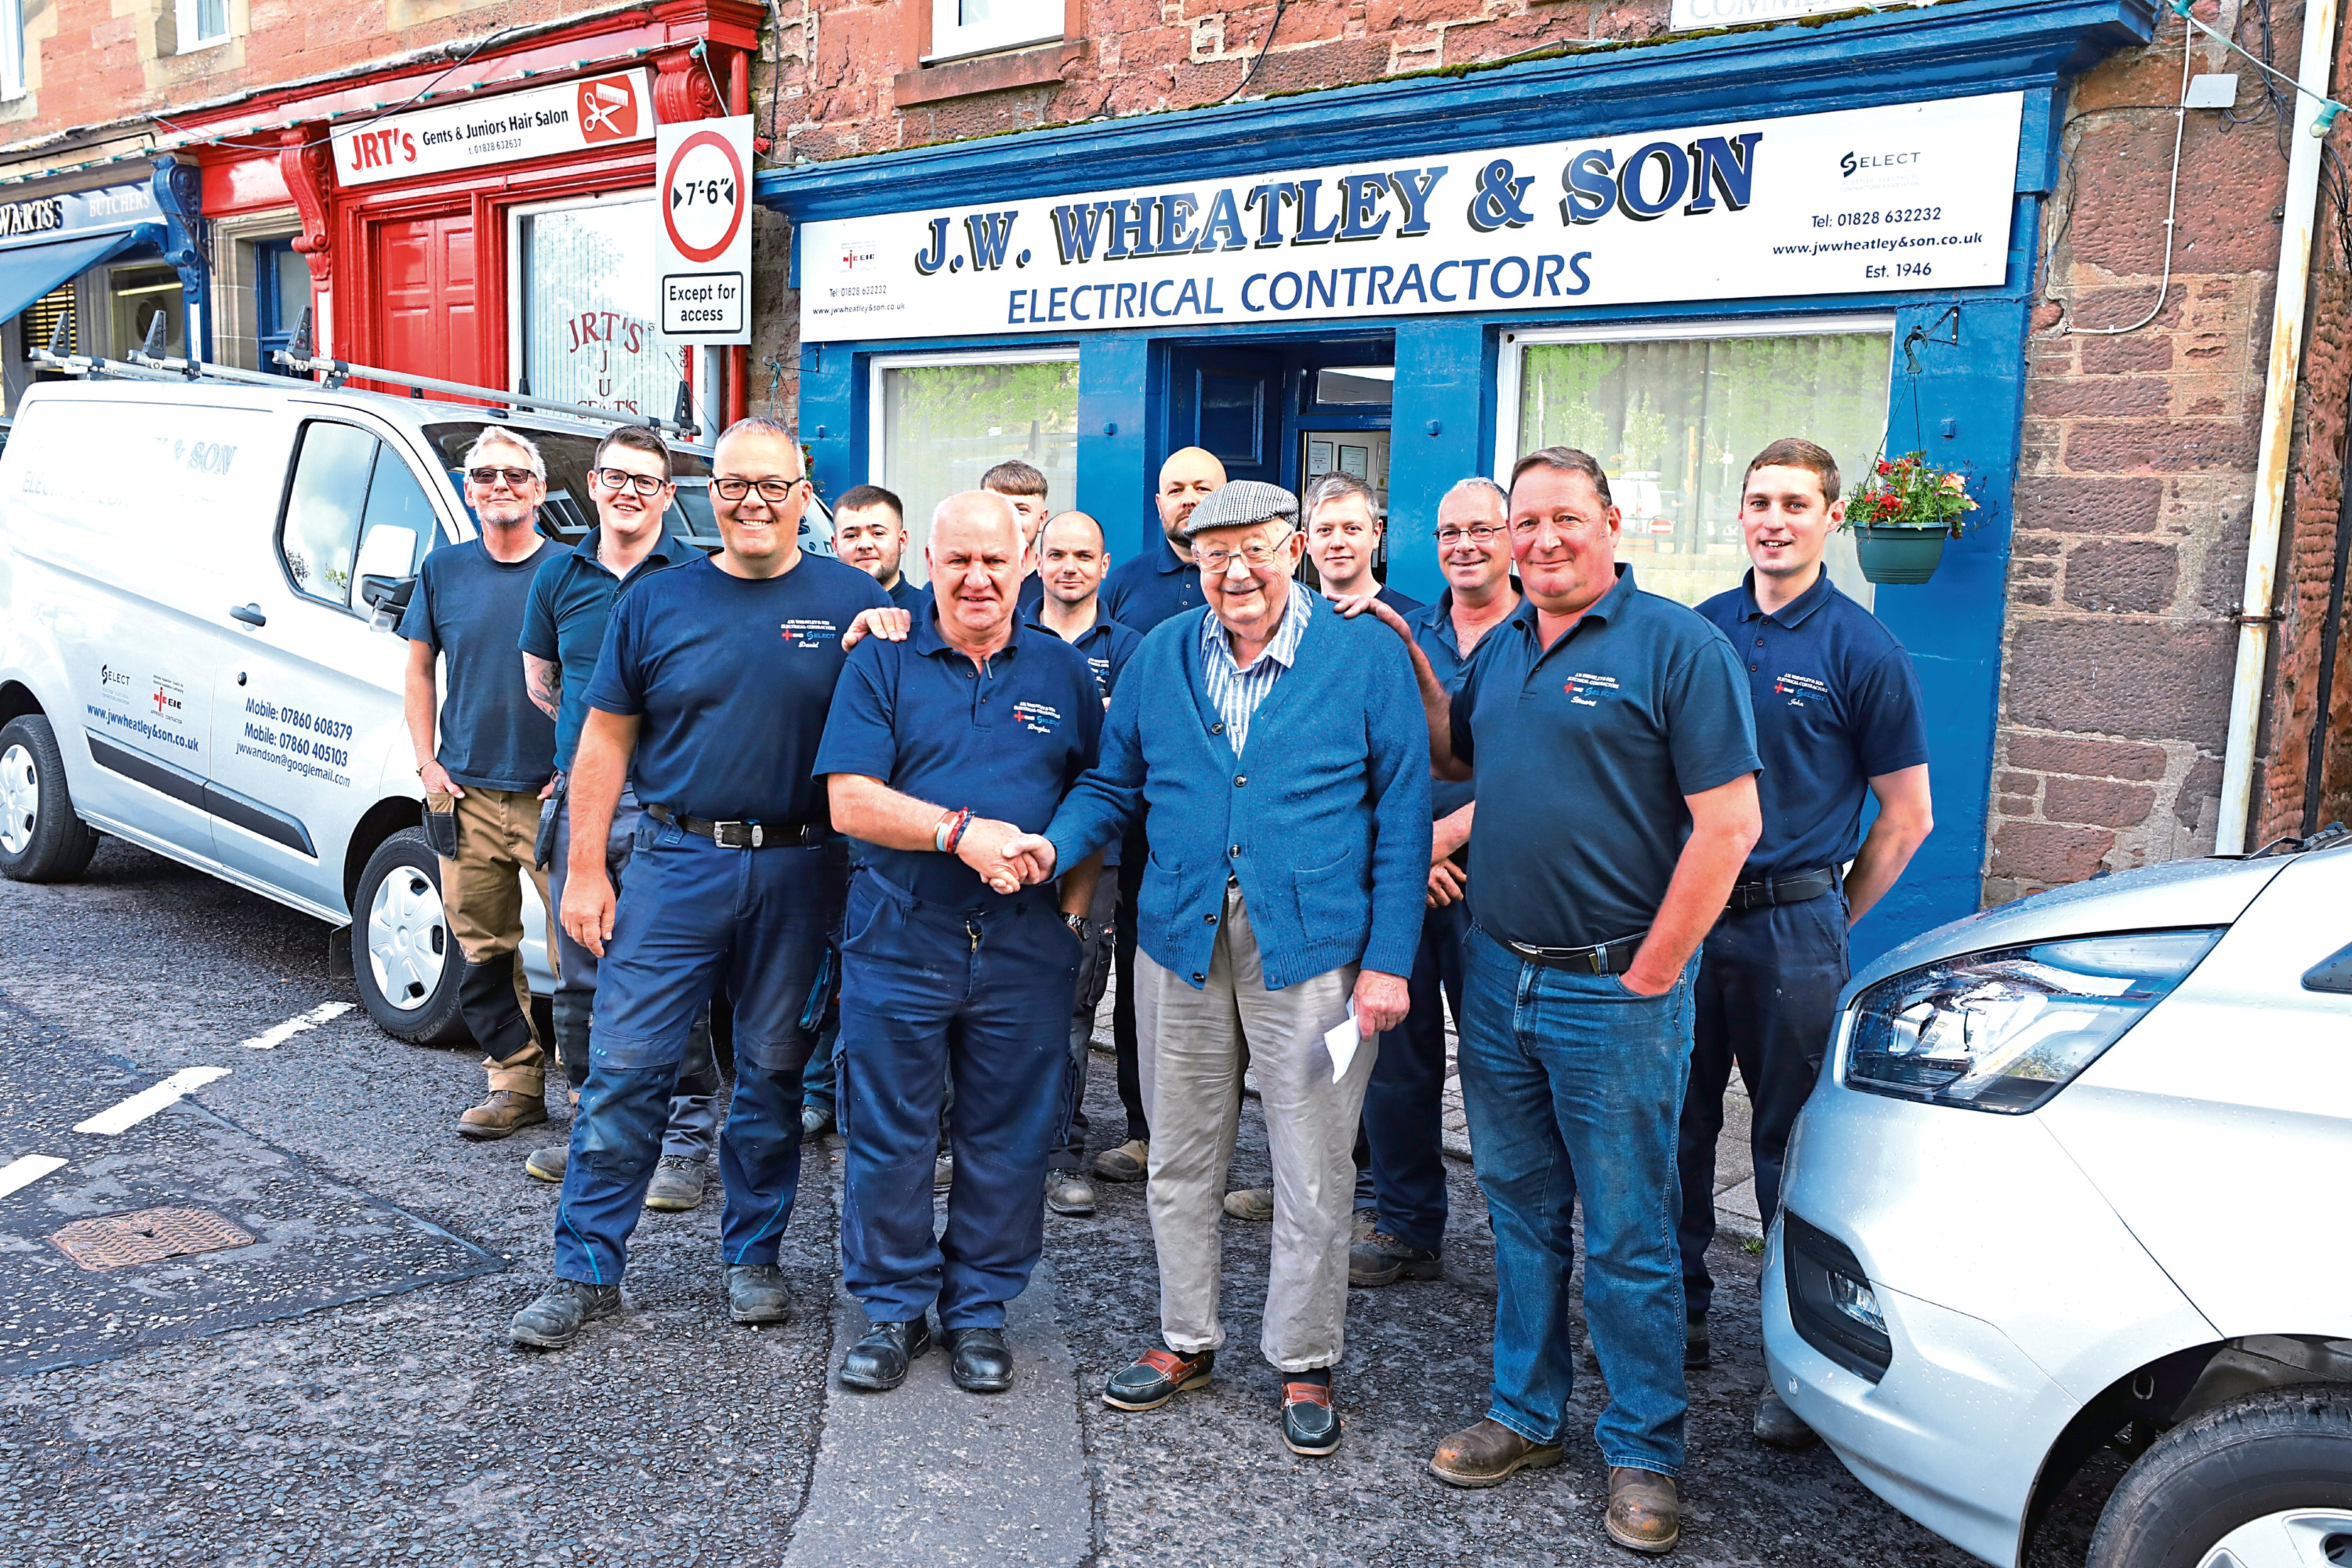 Tele News - Sarah Williamson story - Dougie Dow.  CR0010703 Picture shows; Dougie Dow, 2nd left front who retired today after 48 years with JW Wheatley & Son, Electrical Contarctors based in Alyth, along with (front four L/R) David Wheatley, Ian Wheatley and Stuart Wheatley. Thursday 20th June 2019. Dougie Nicolson / DCT Media.